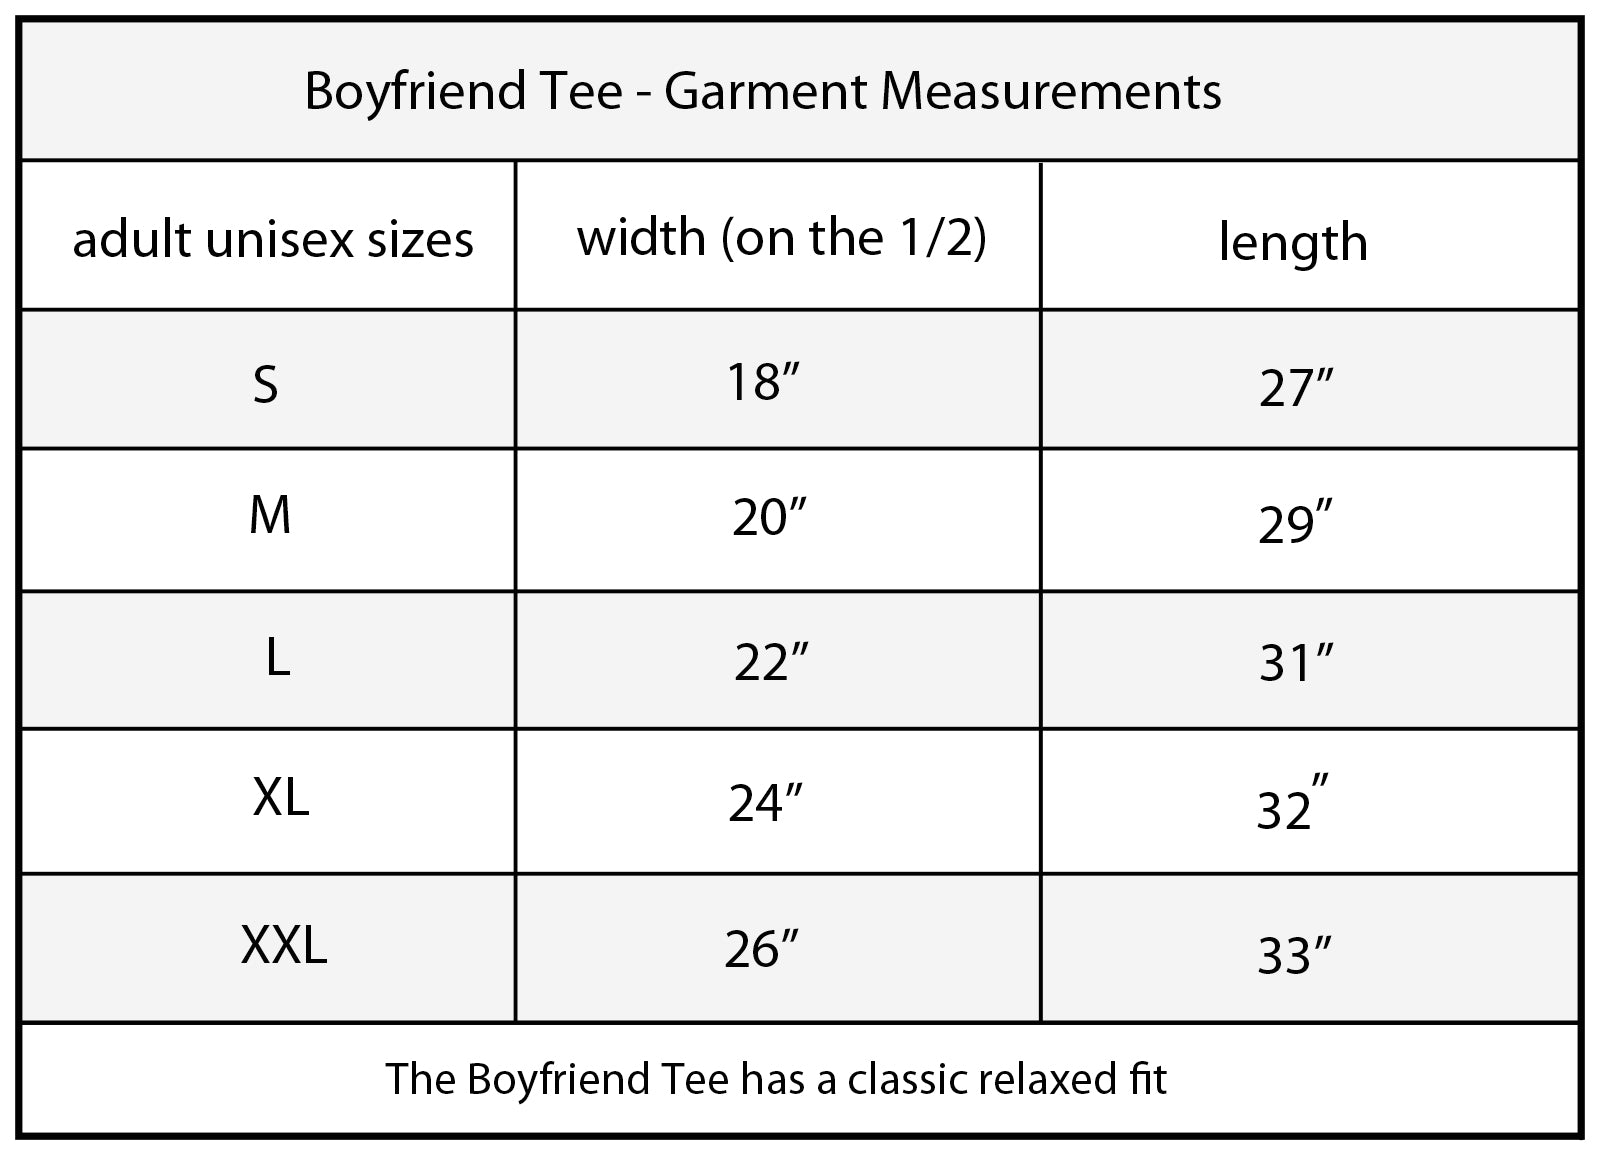 Cape Cali Boy Friend (Mens)Tee Size Chart